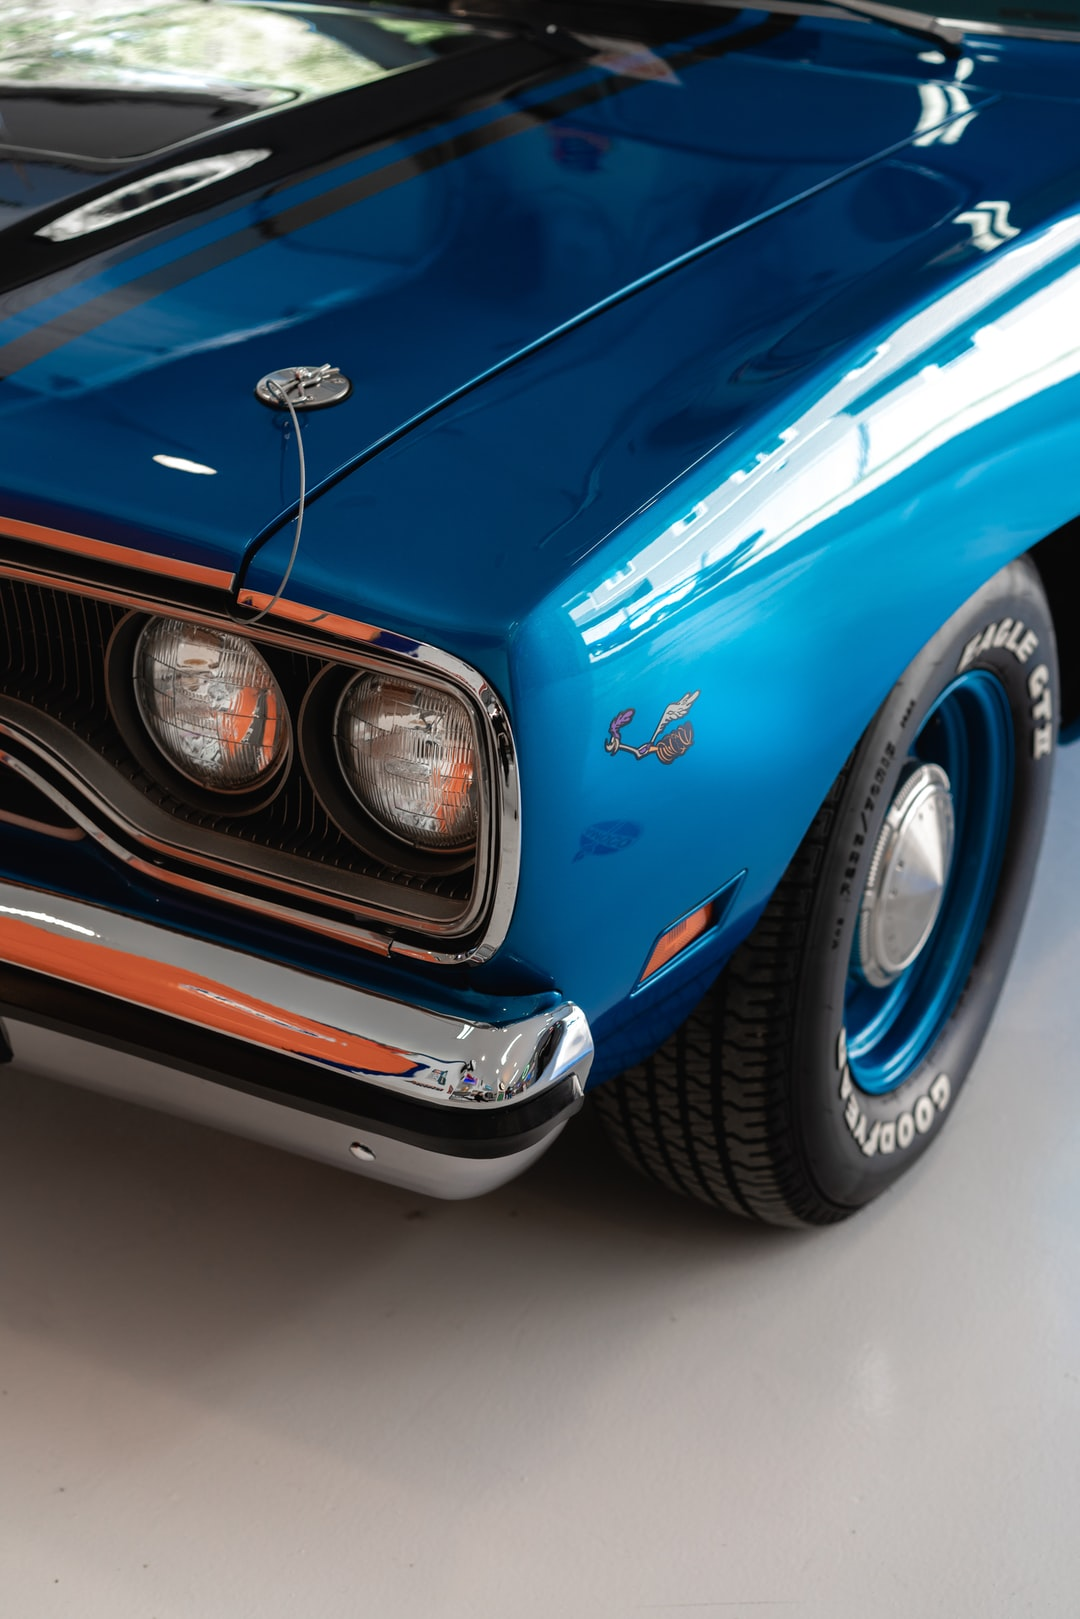 500+ Muscle Car Pictures | Download Free Images on Unsplash